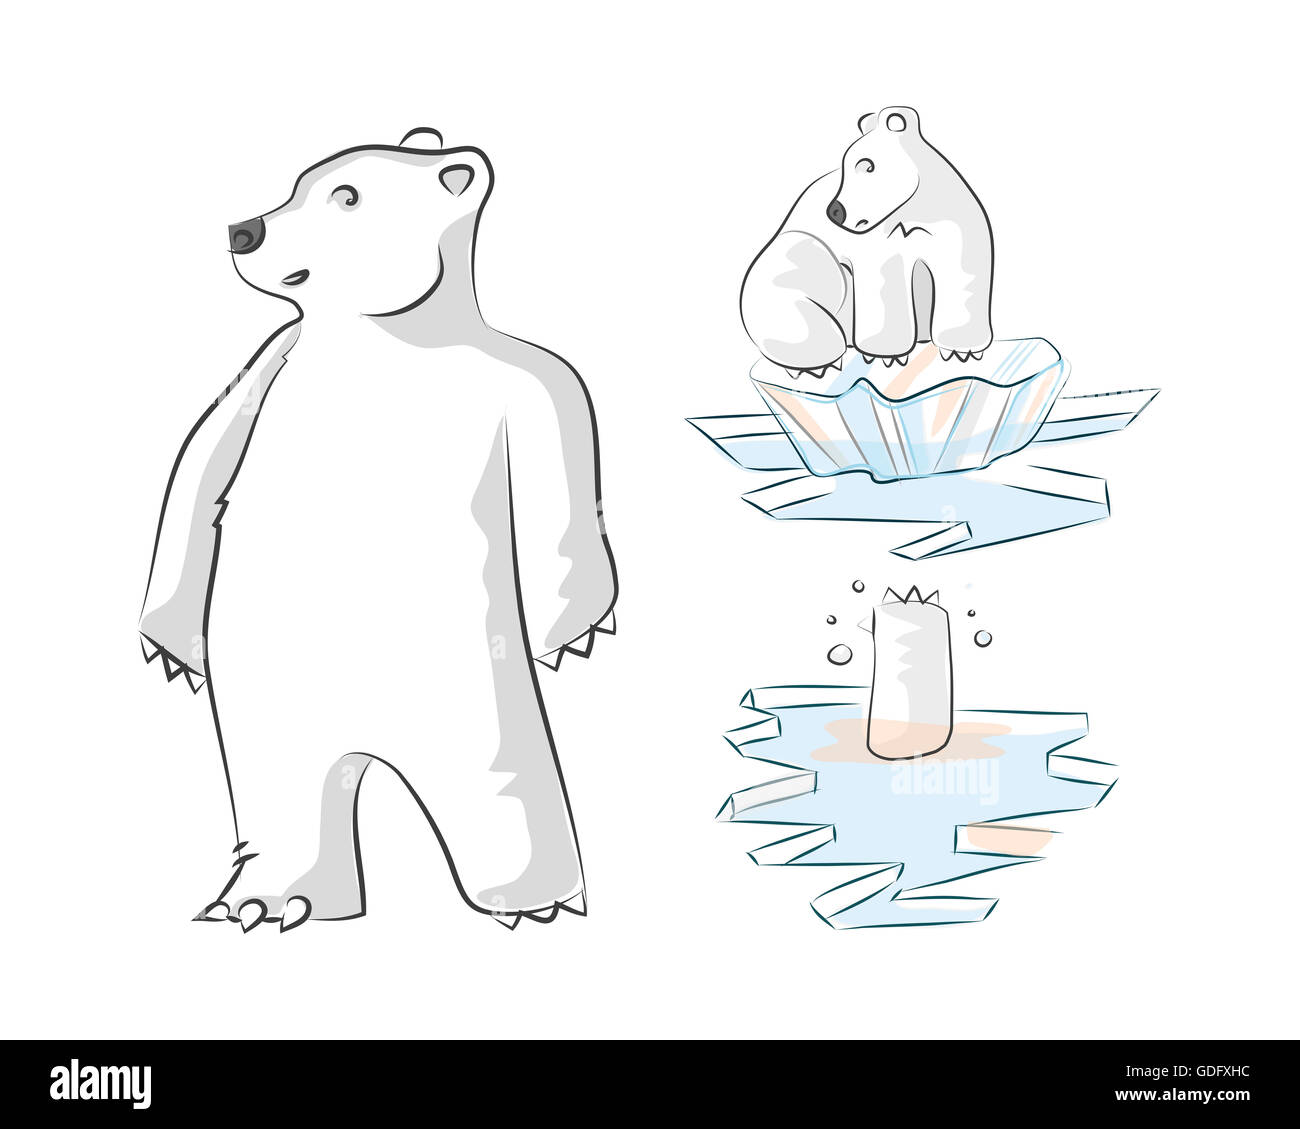 Hand Drawn Illustration And Drawing Of A Polar Bear On